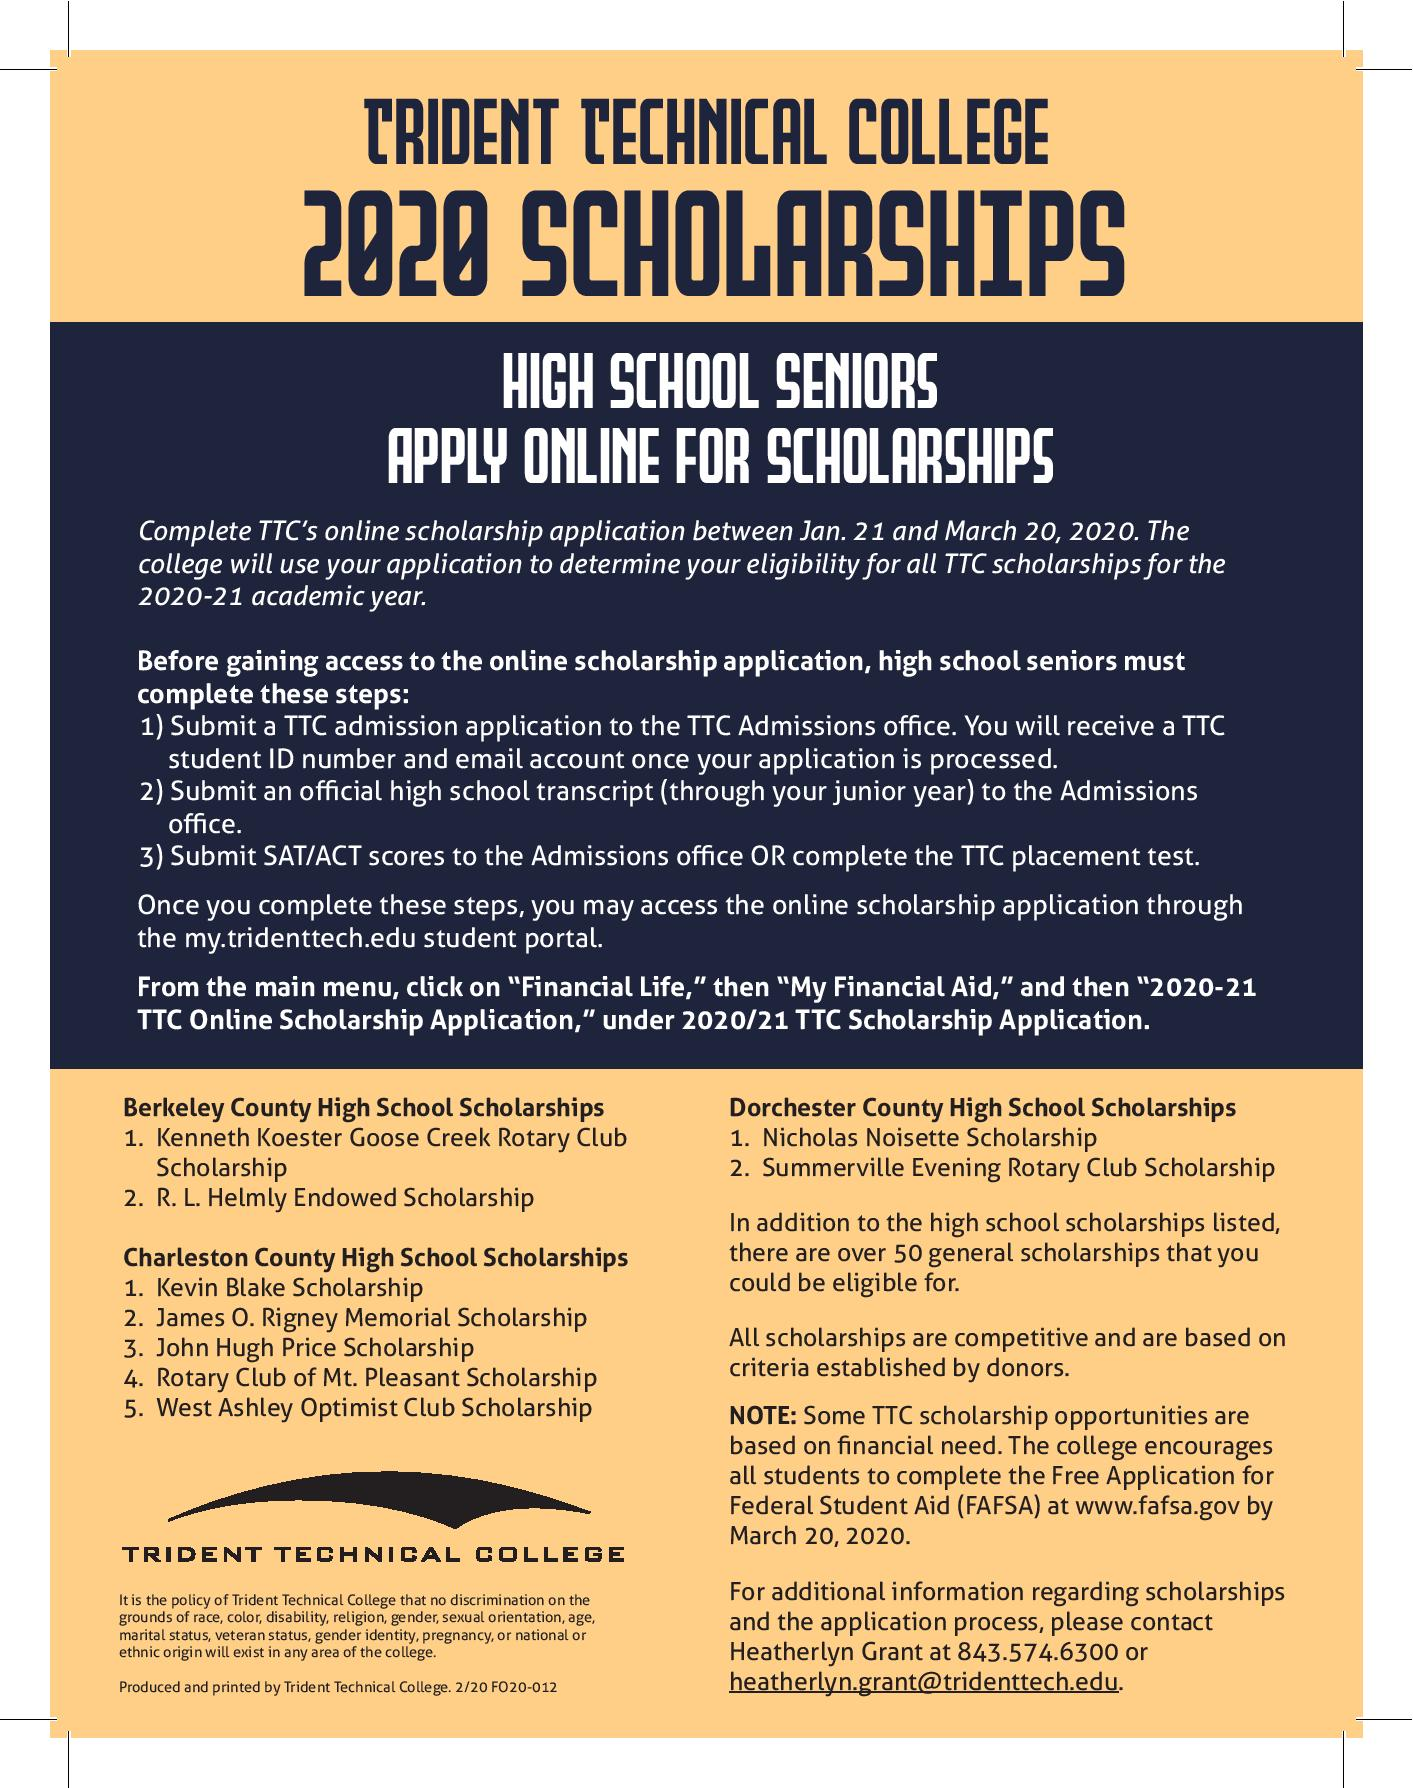 Trident Technical College Scholarship Notice